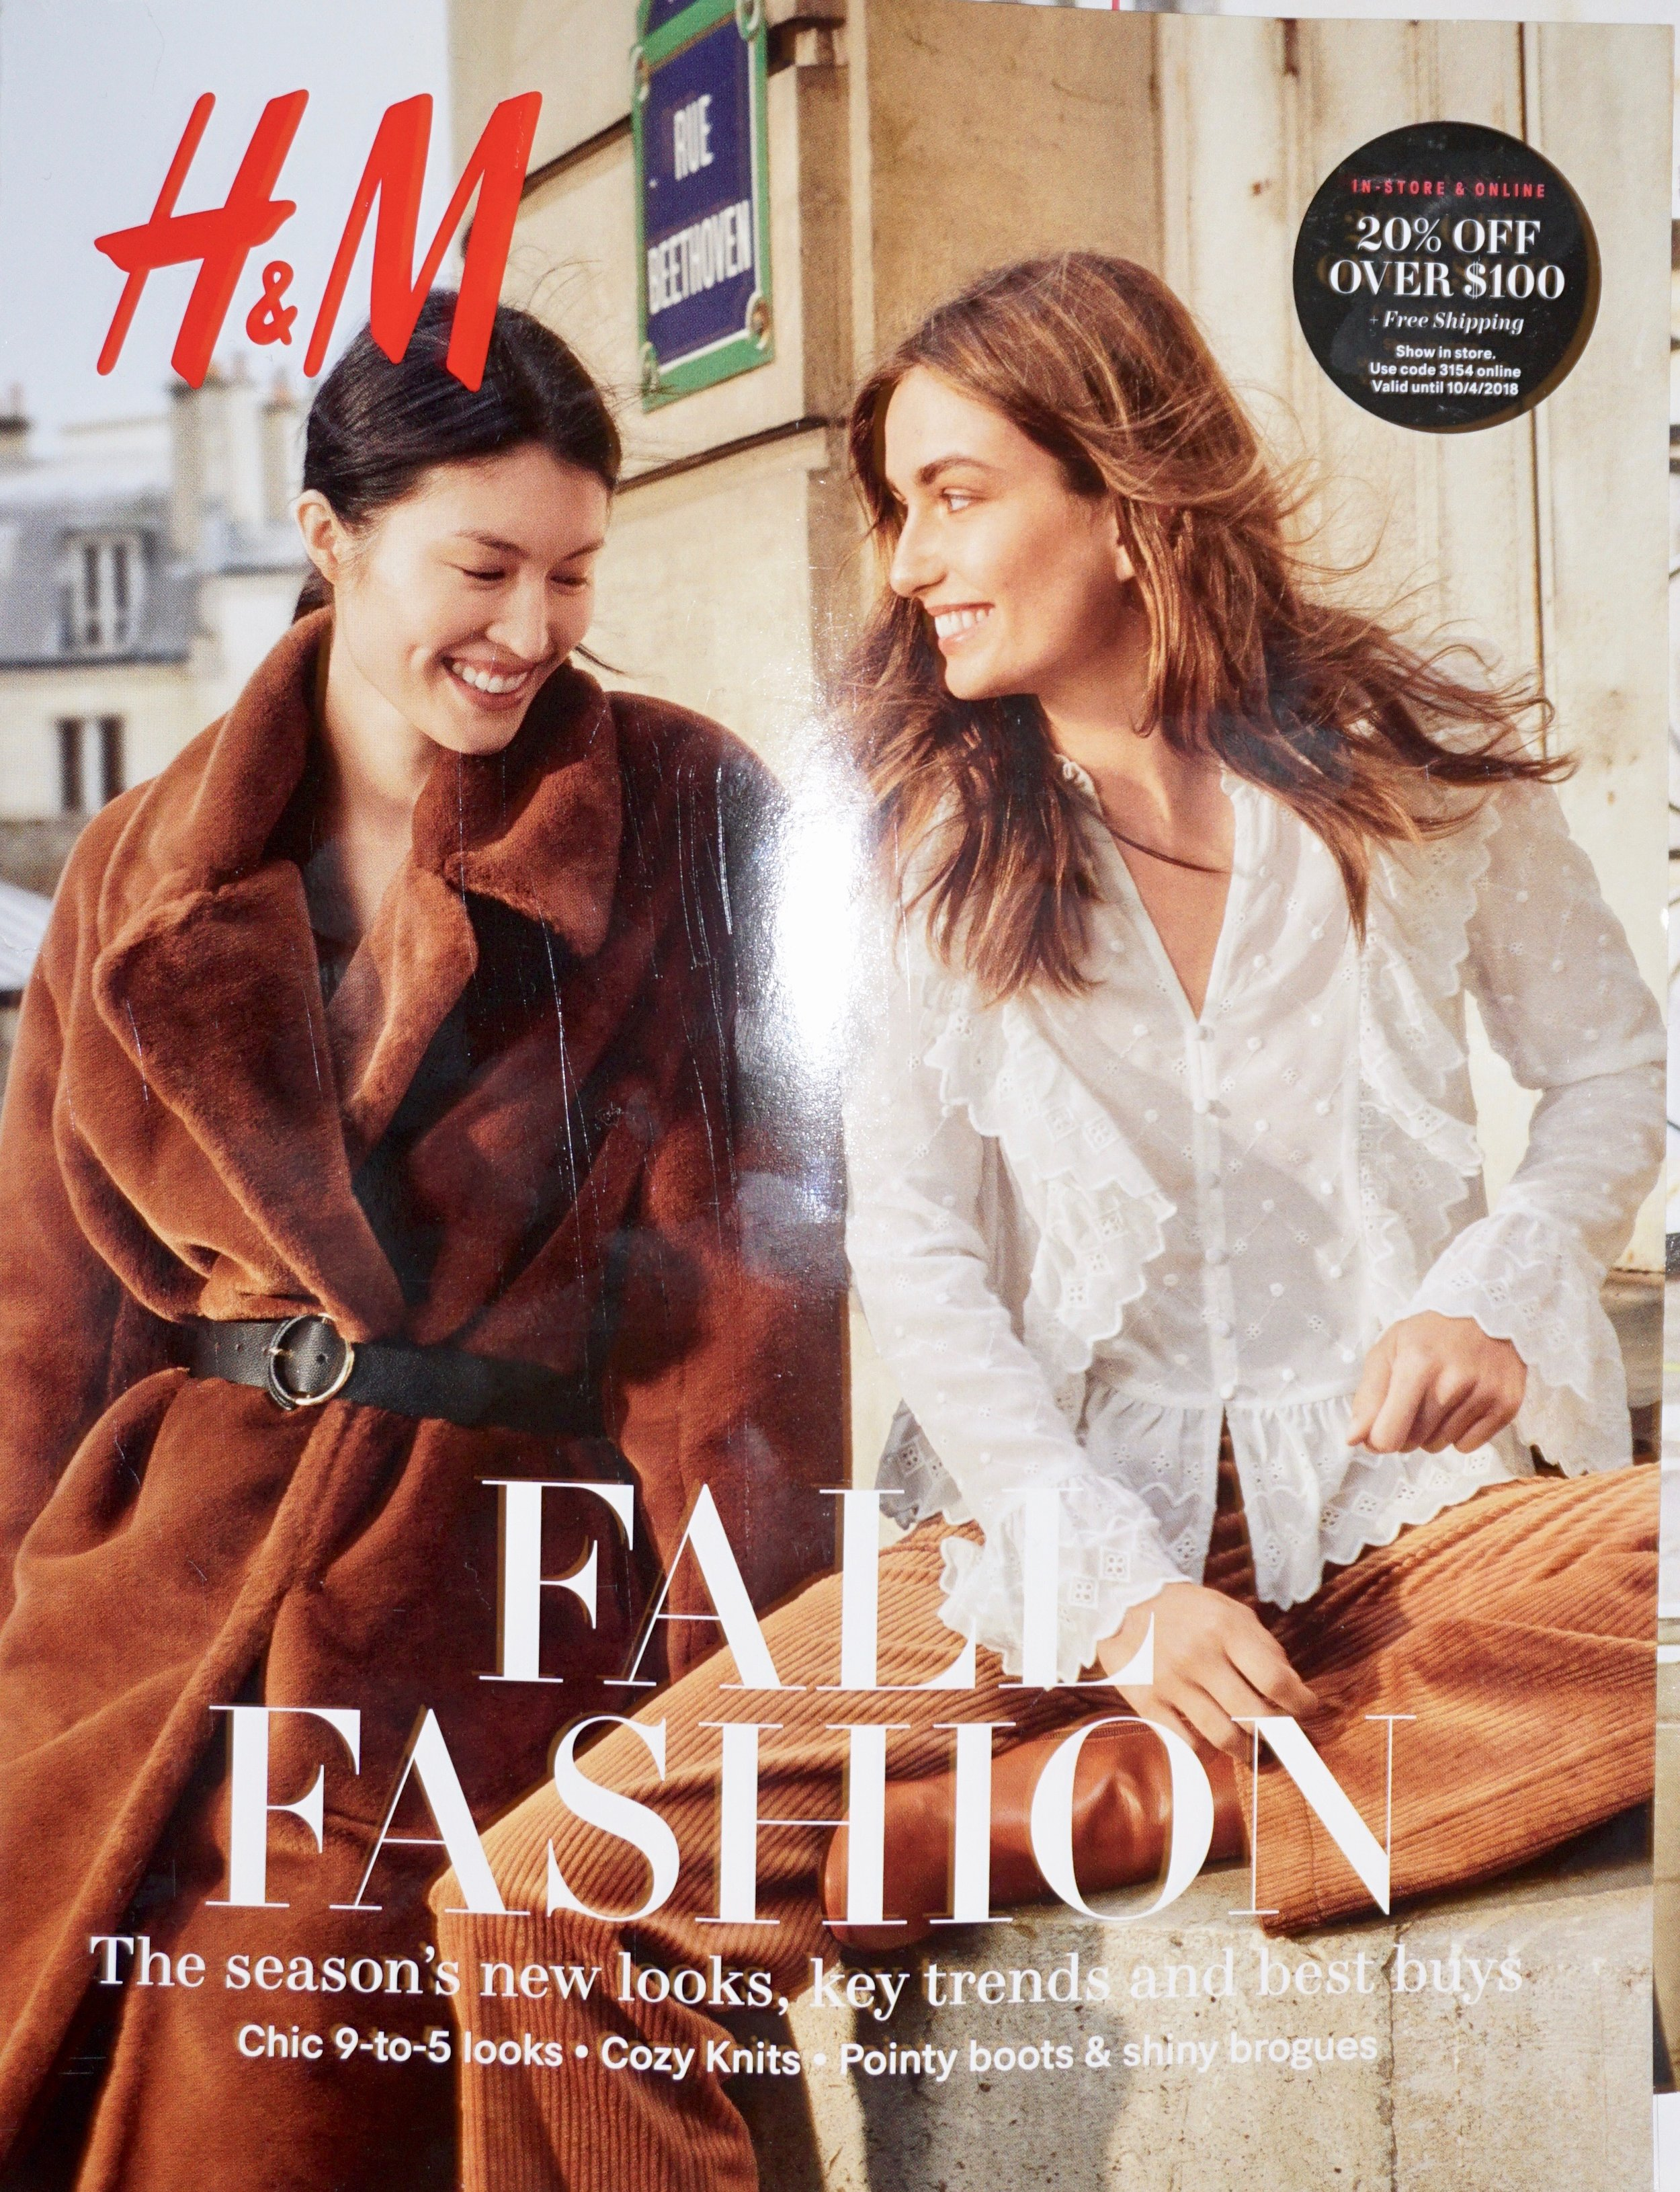 H and M Fall Catalog, used as a source for imagery